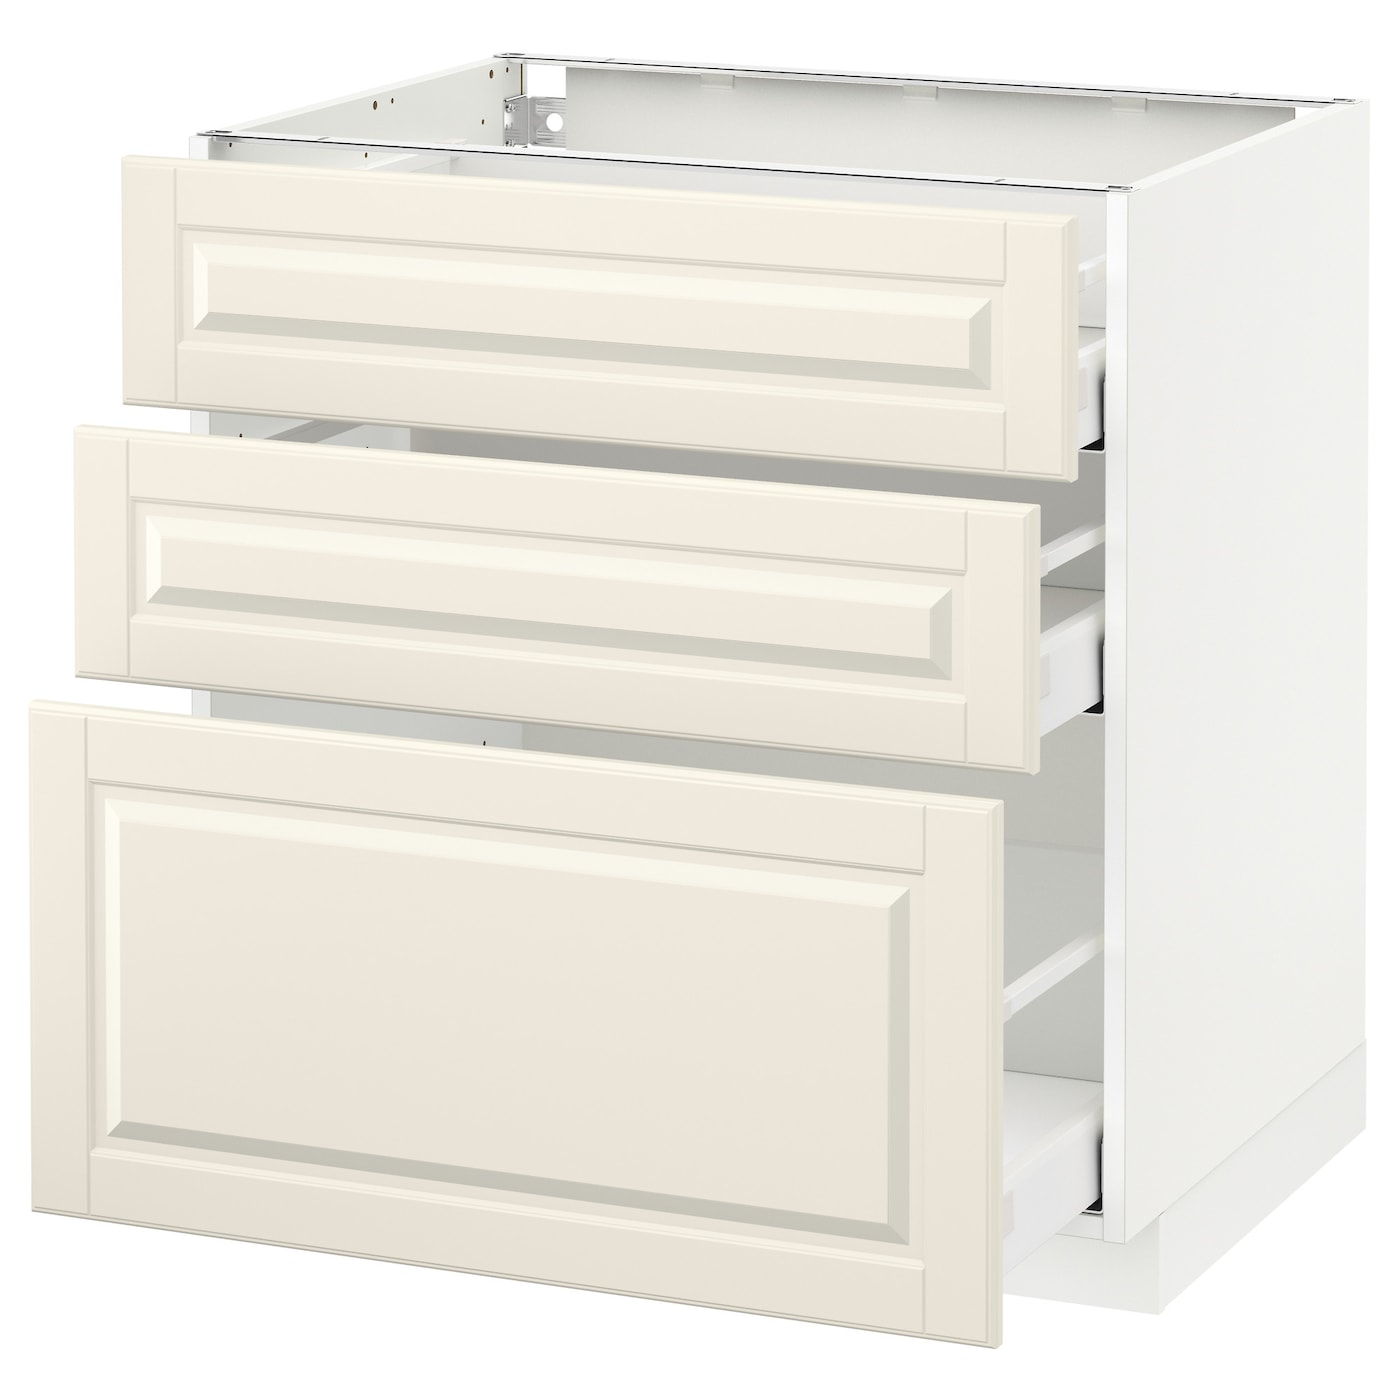 Base Cabinet With 3 Drawers Metod Maximera White Bodbyn Off White